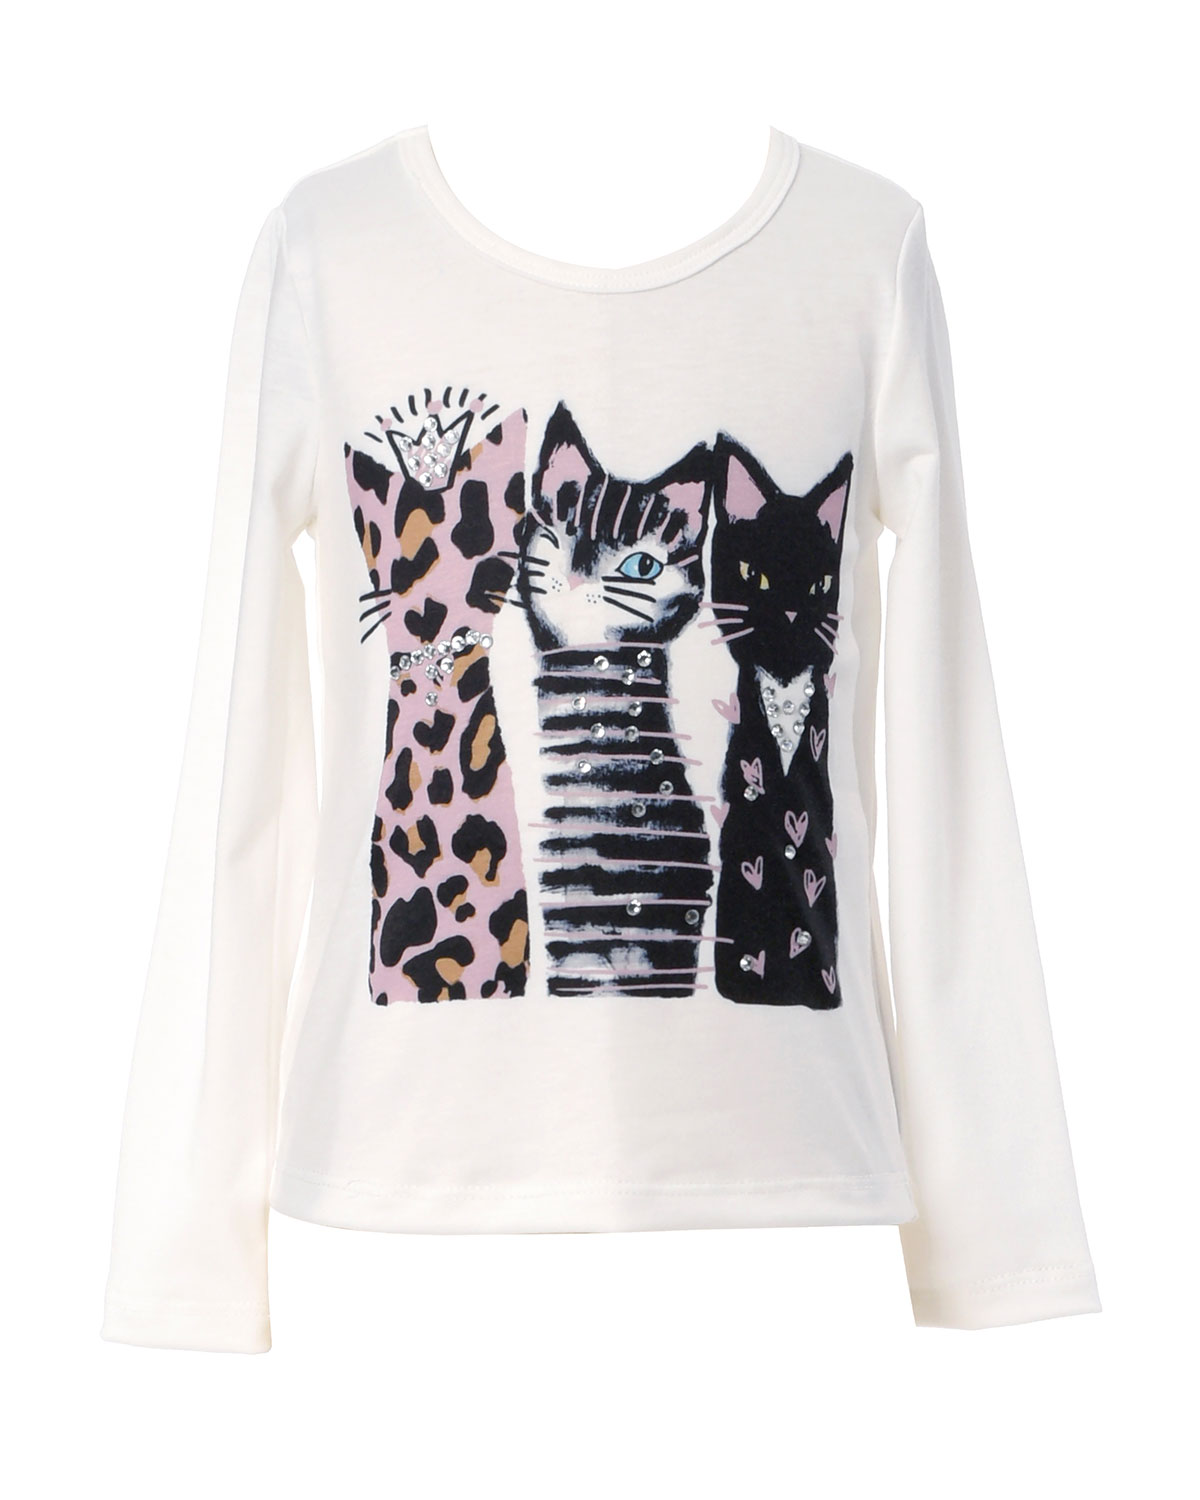 Hannah Banana Girl's 3 Cats Long-Sleeve Graphic T-Shirt, Size 4-6X